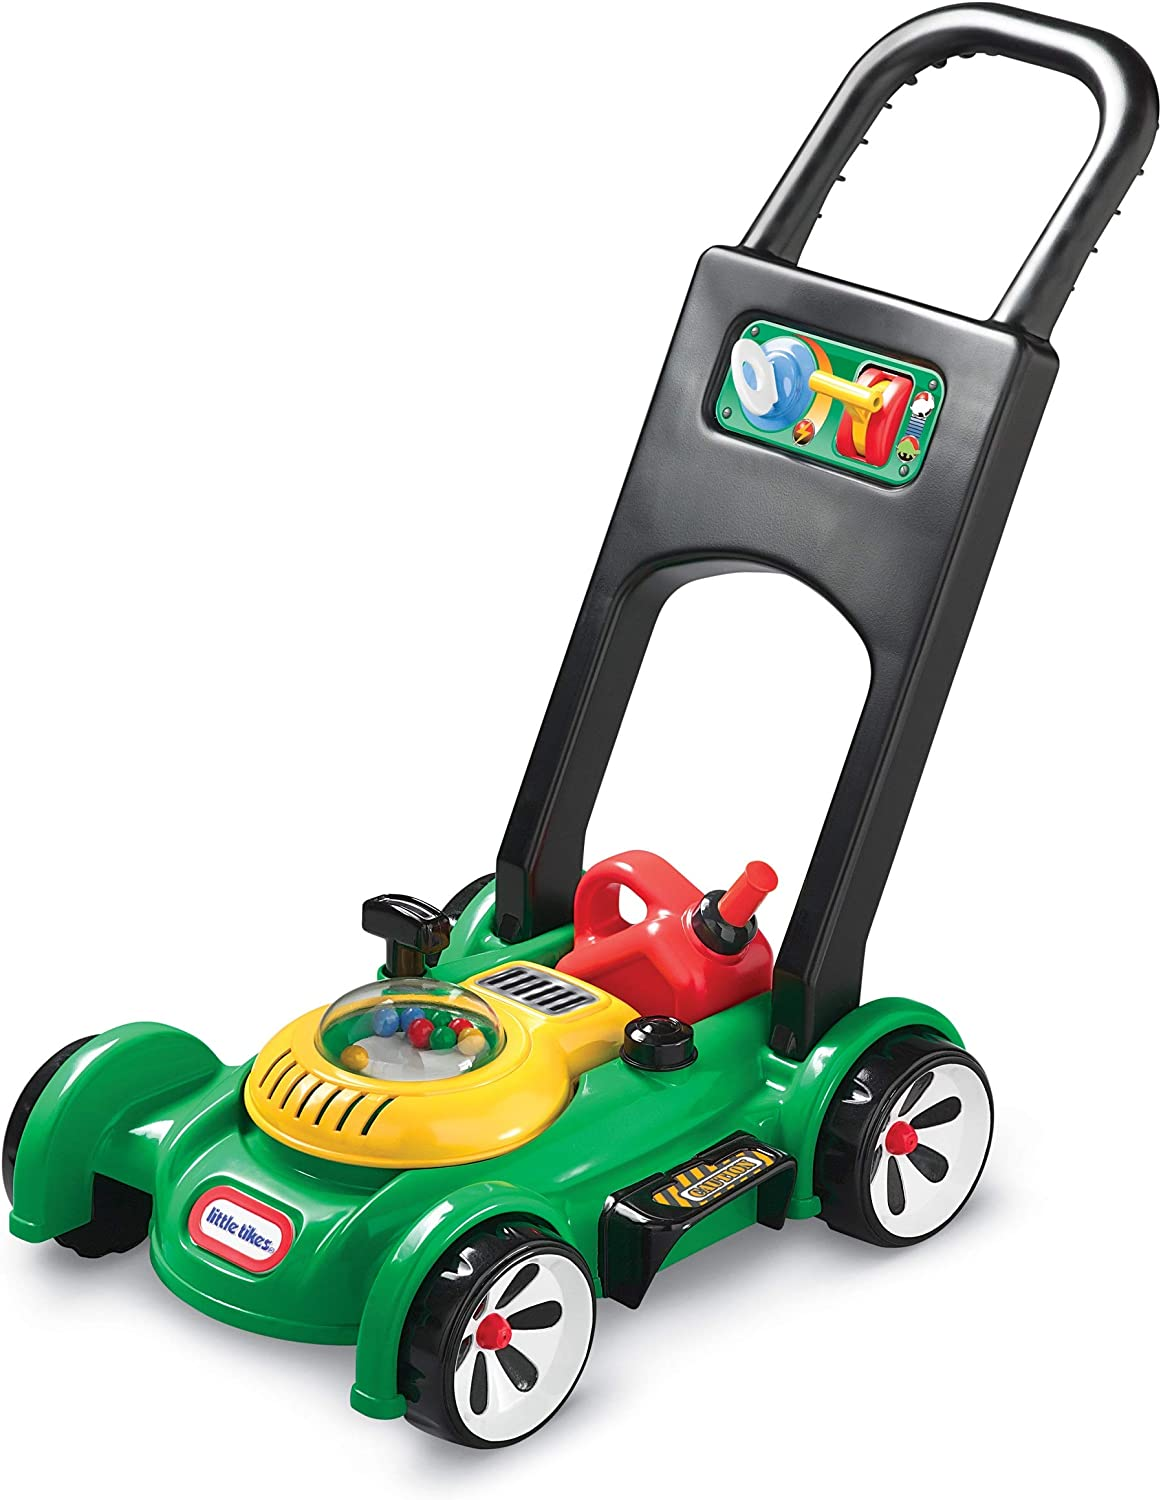 Top 7 Best Bubble Lawn Mower For Kids & Toddlers 2020 2